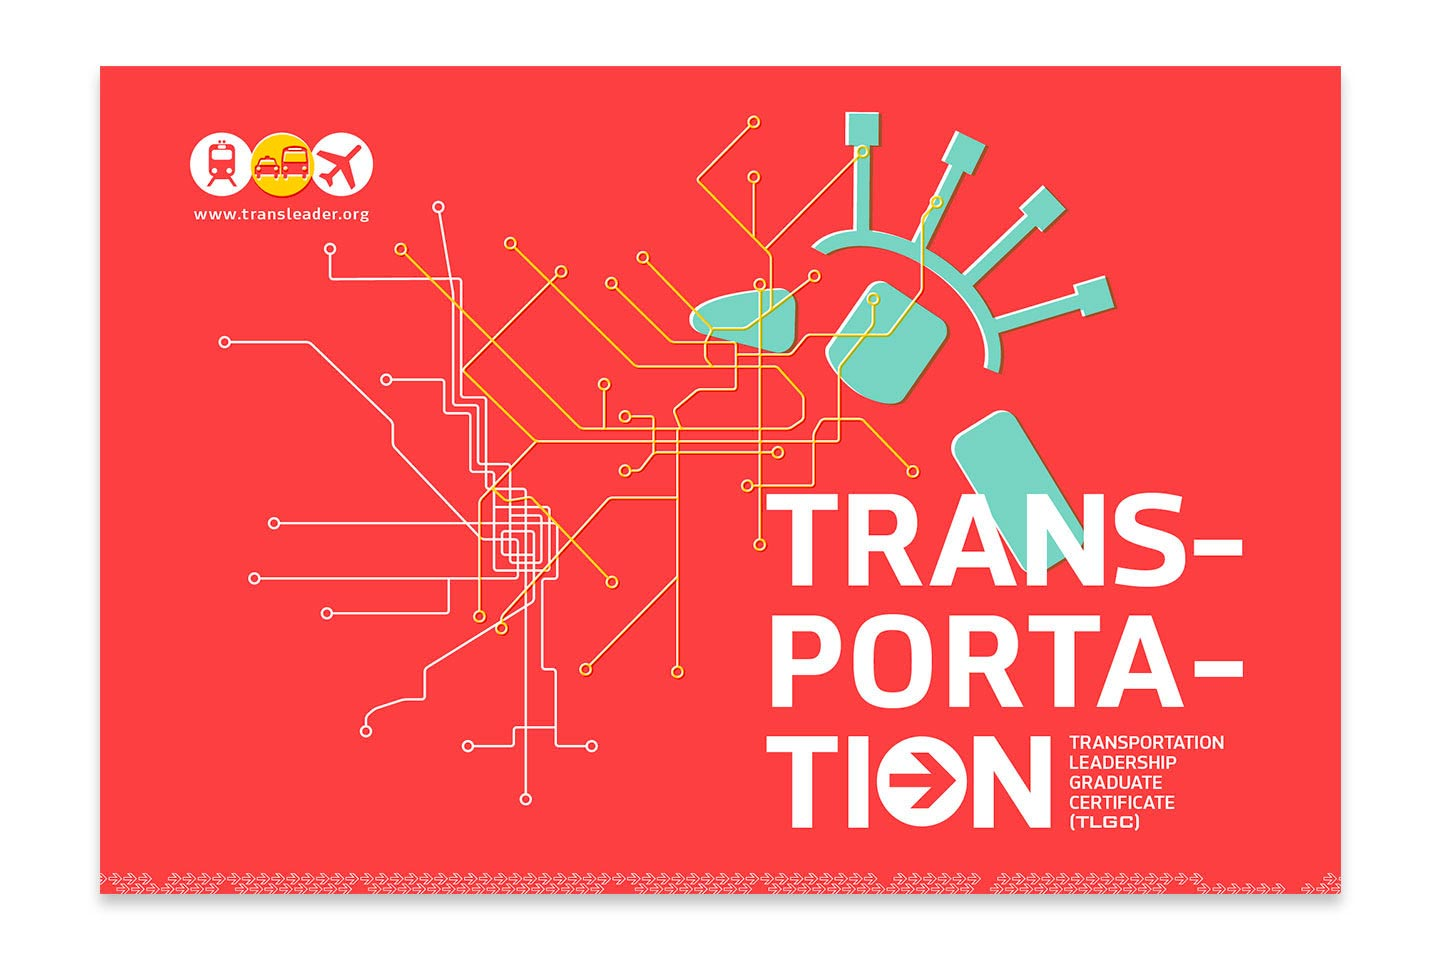 TRANSPORTATION written in white on an orange background with white and green line illustrations as accents